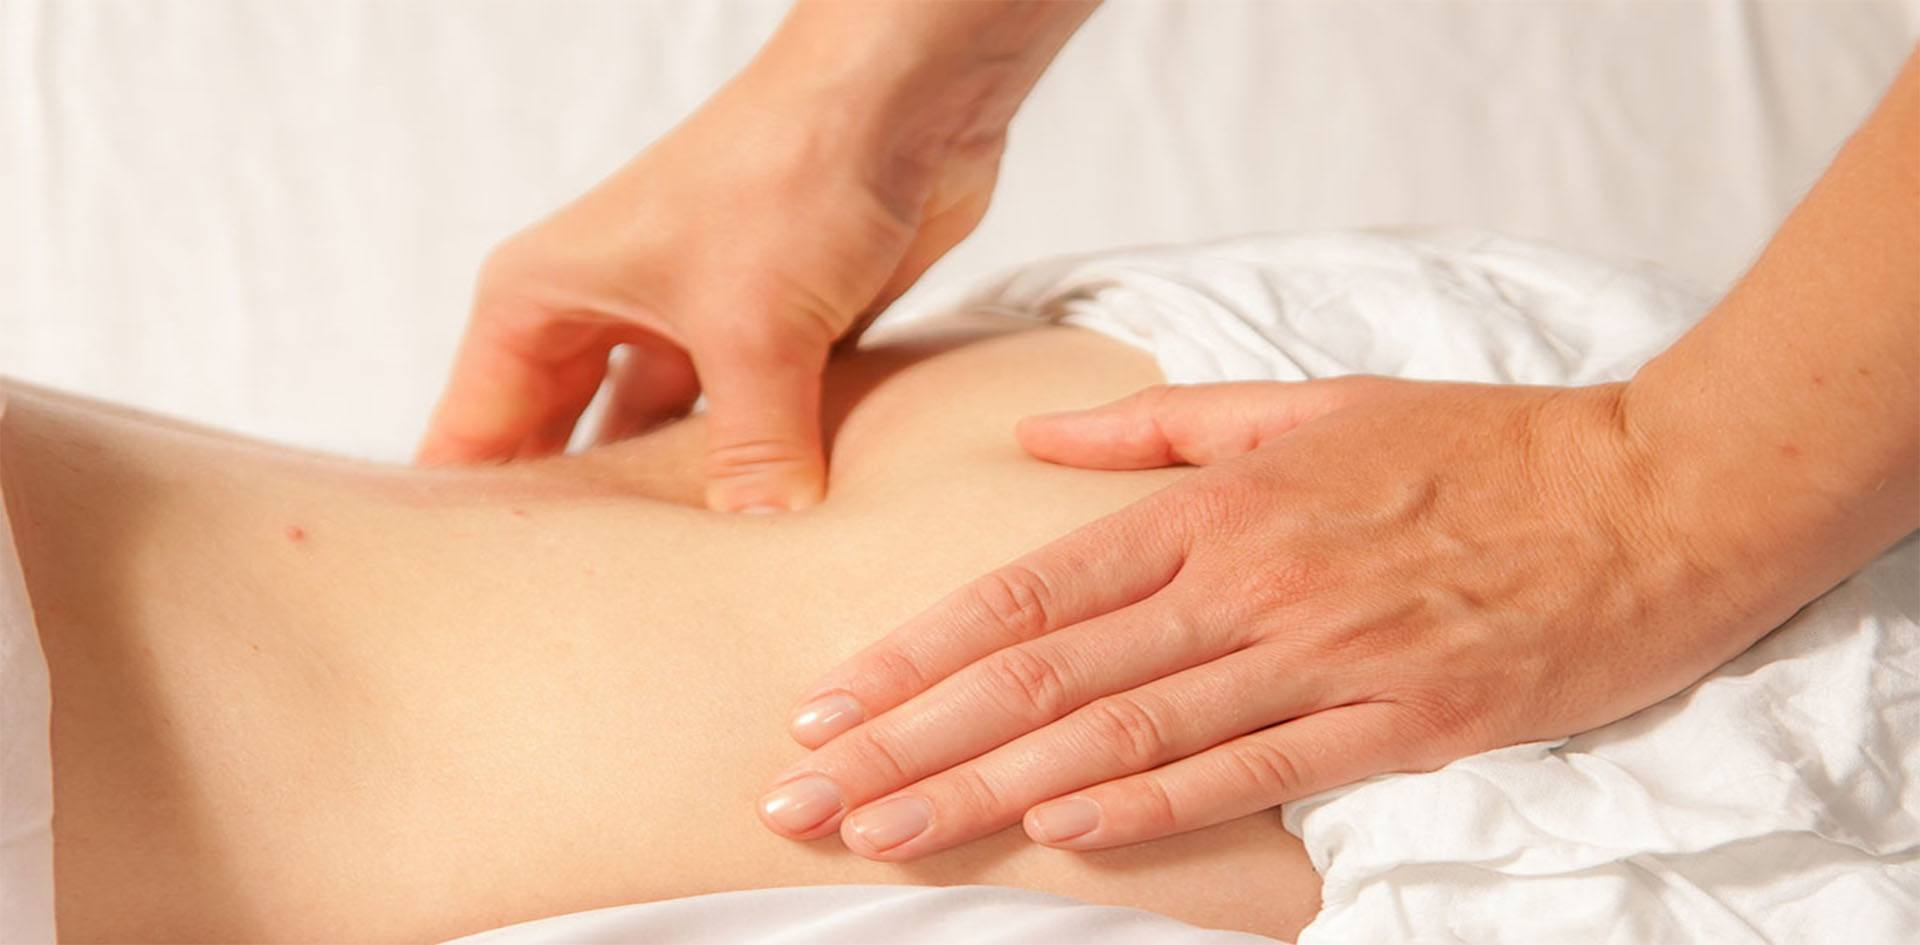 Massage, reflexology helps blood circulation, reduce aches